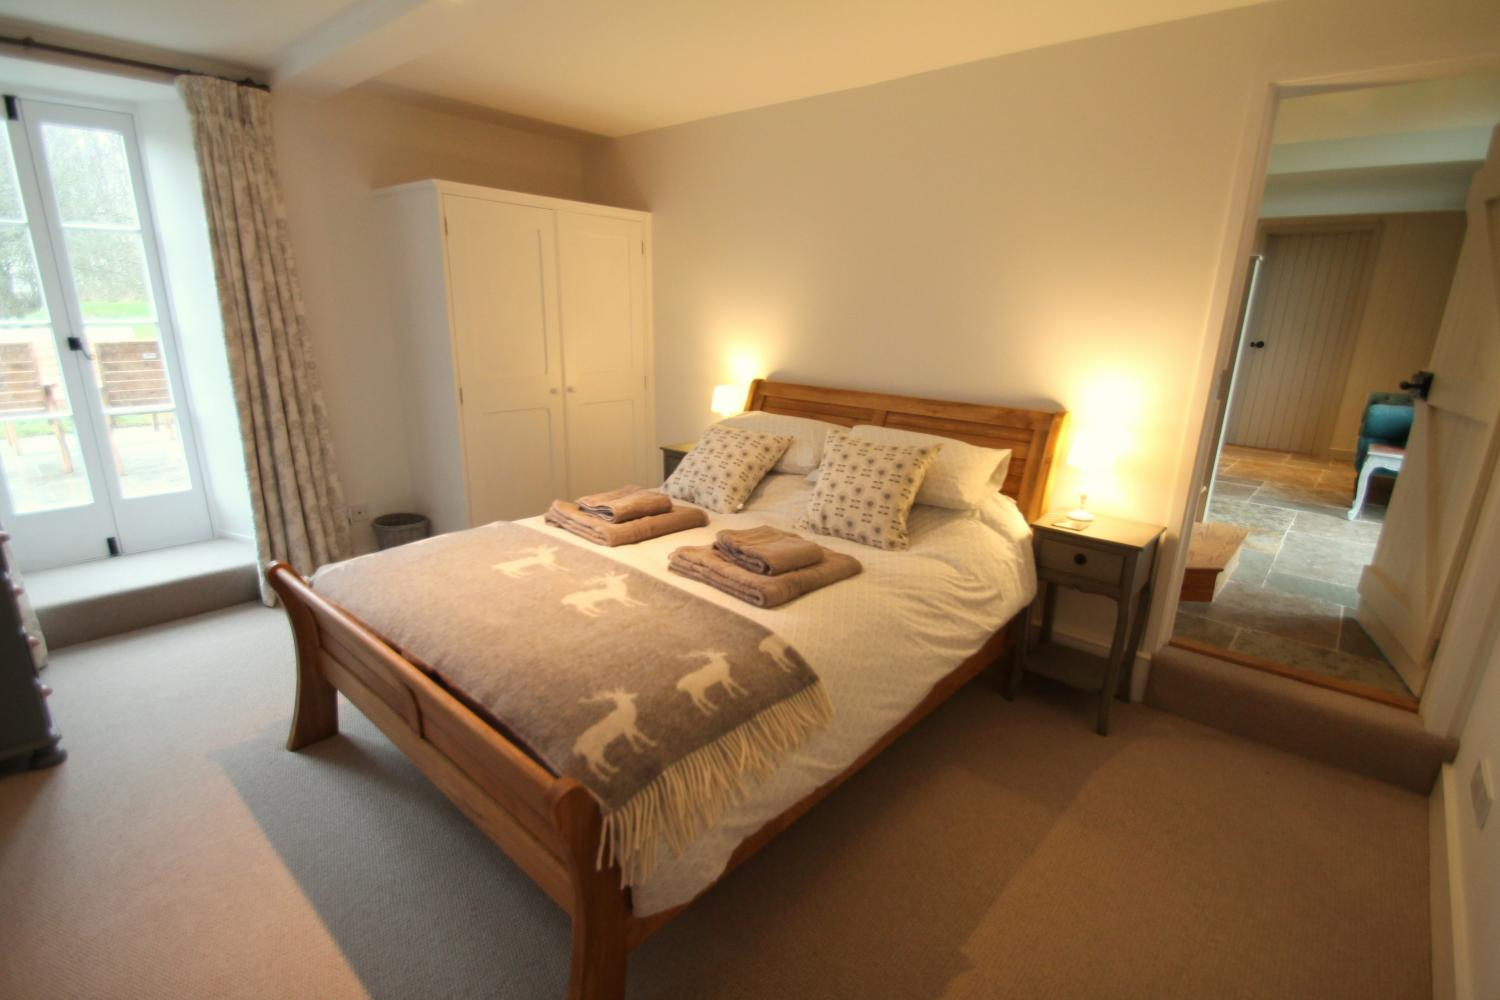 The duvets are 13 tog and each bed has a cosy blanket in case the weather turns chilly during your stay.